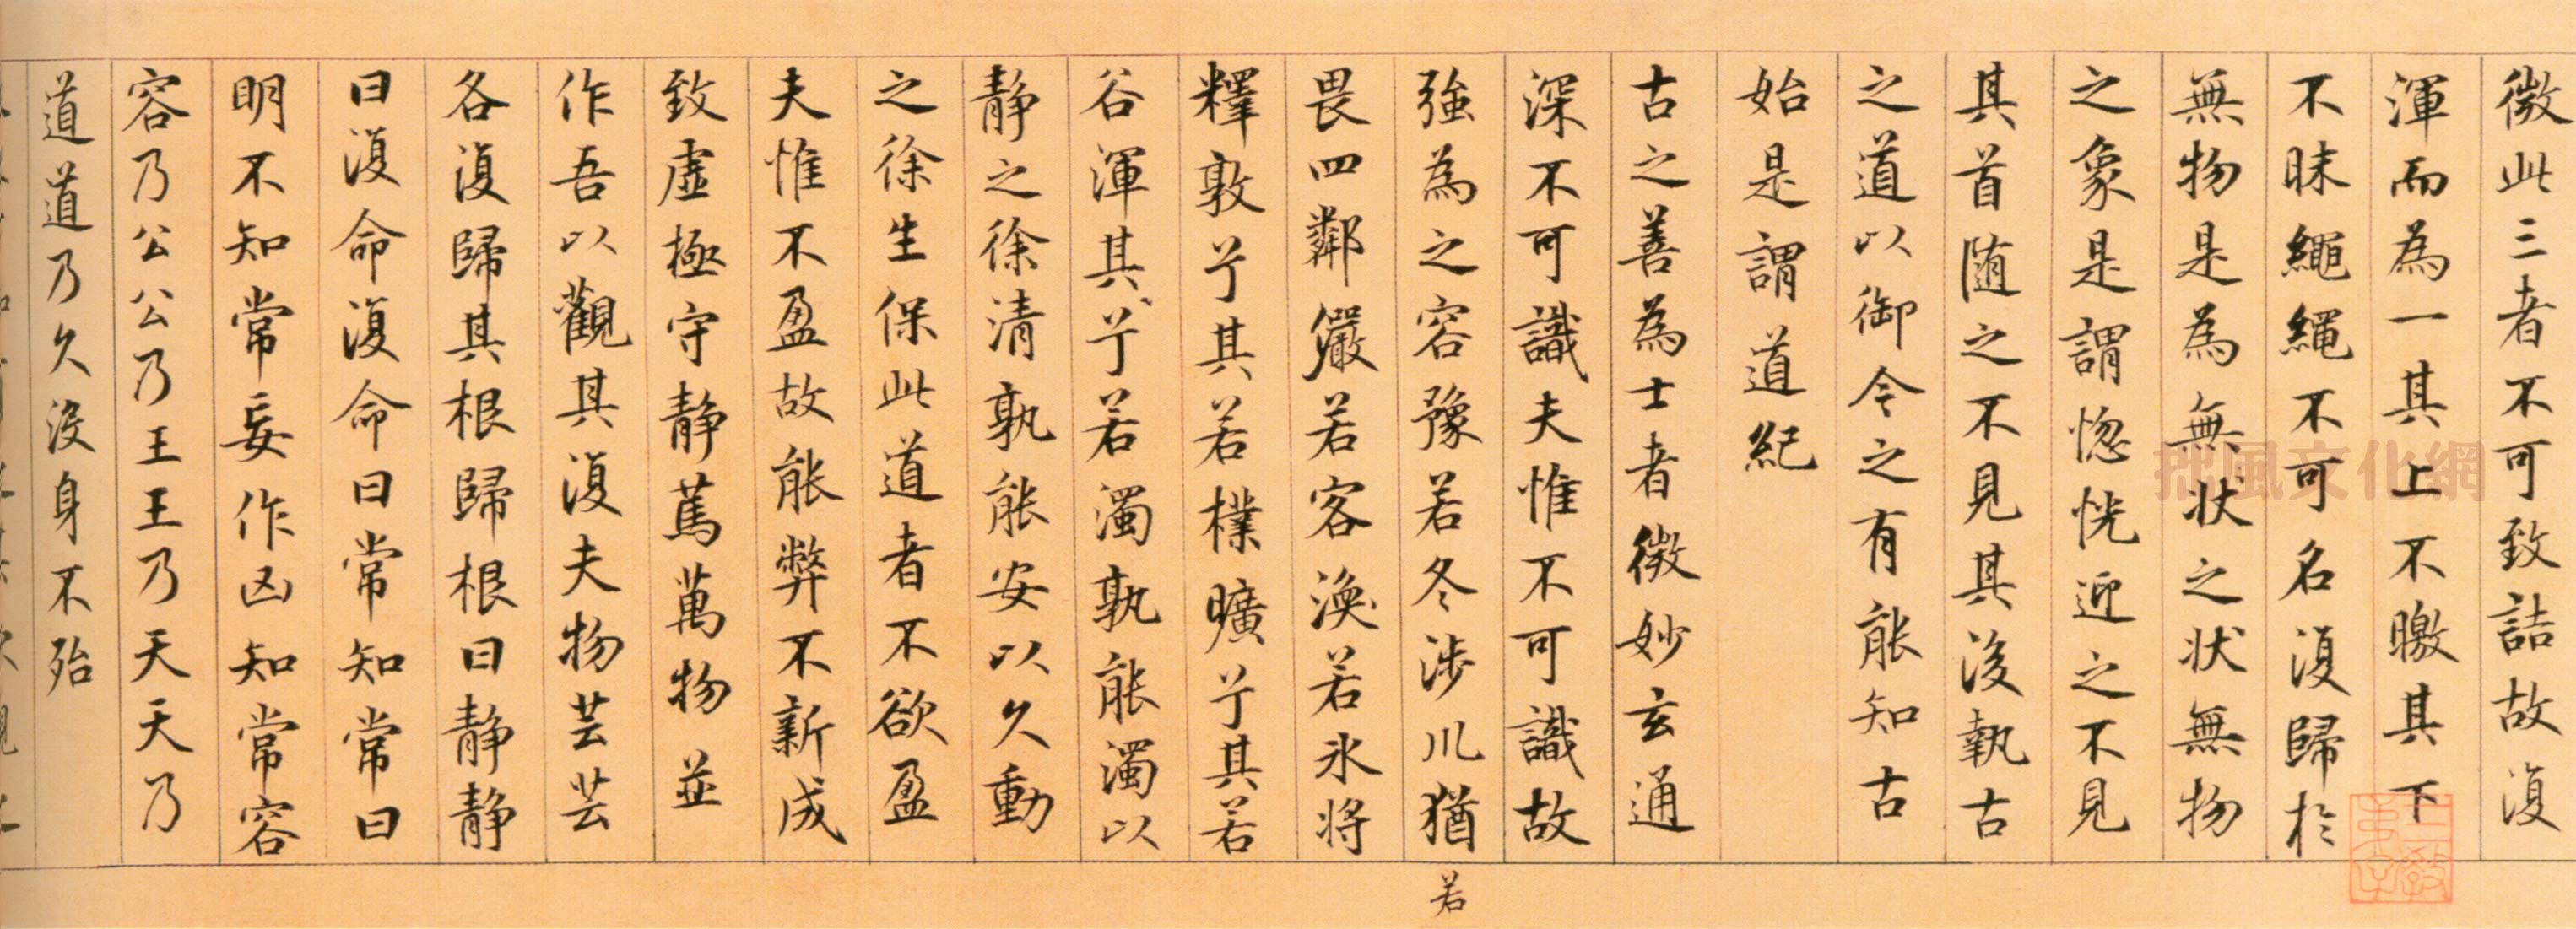 what is the nature of god of daoism Nature of godcreator in daoism there is no god only tao tao is the ultimate from rel 212 at strayer.